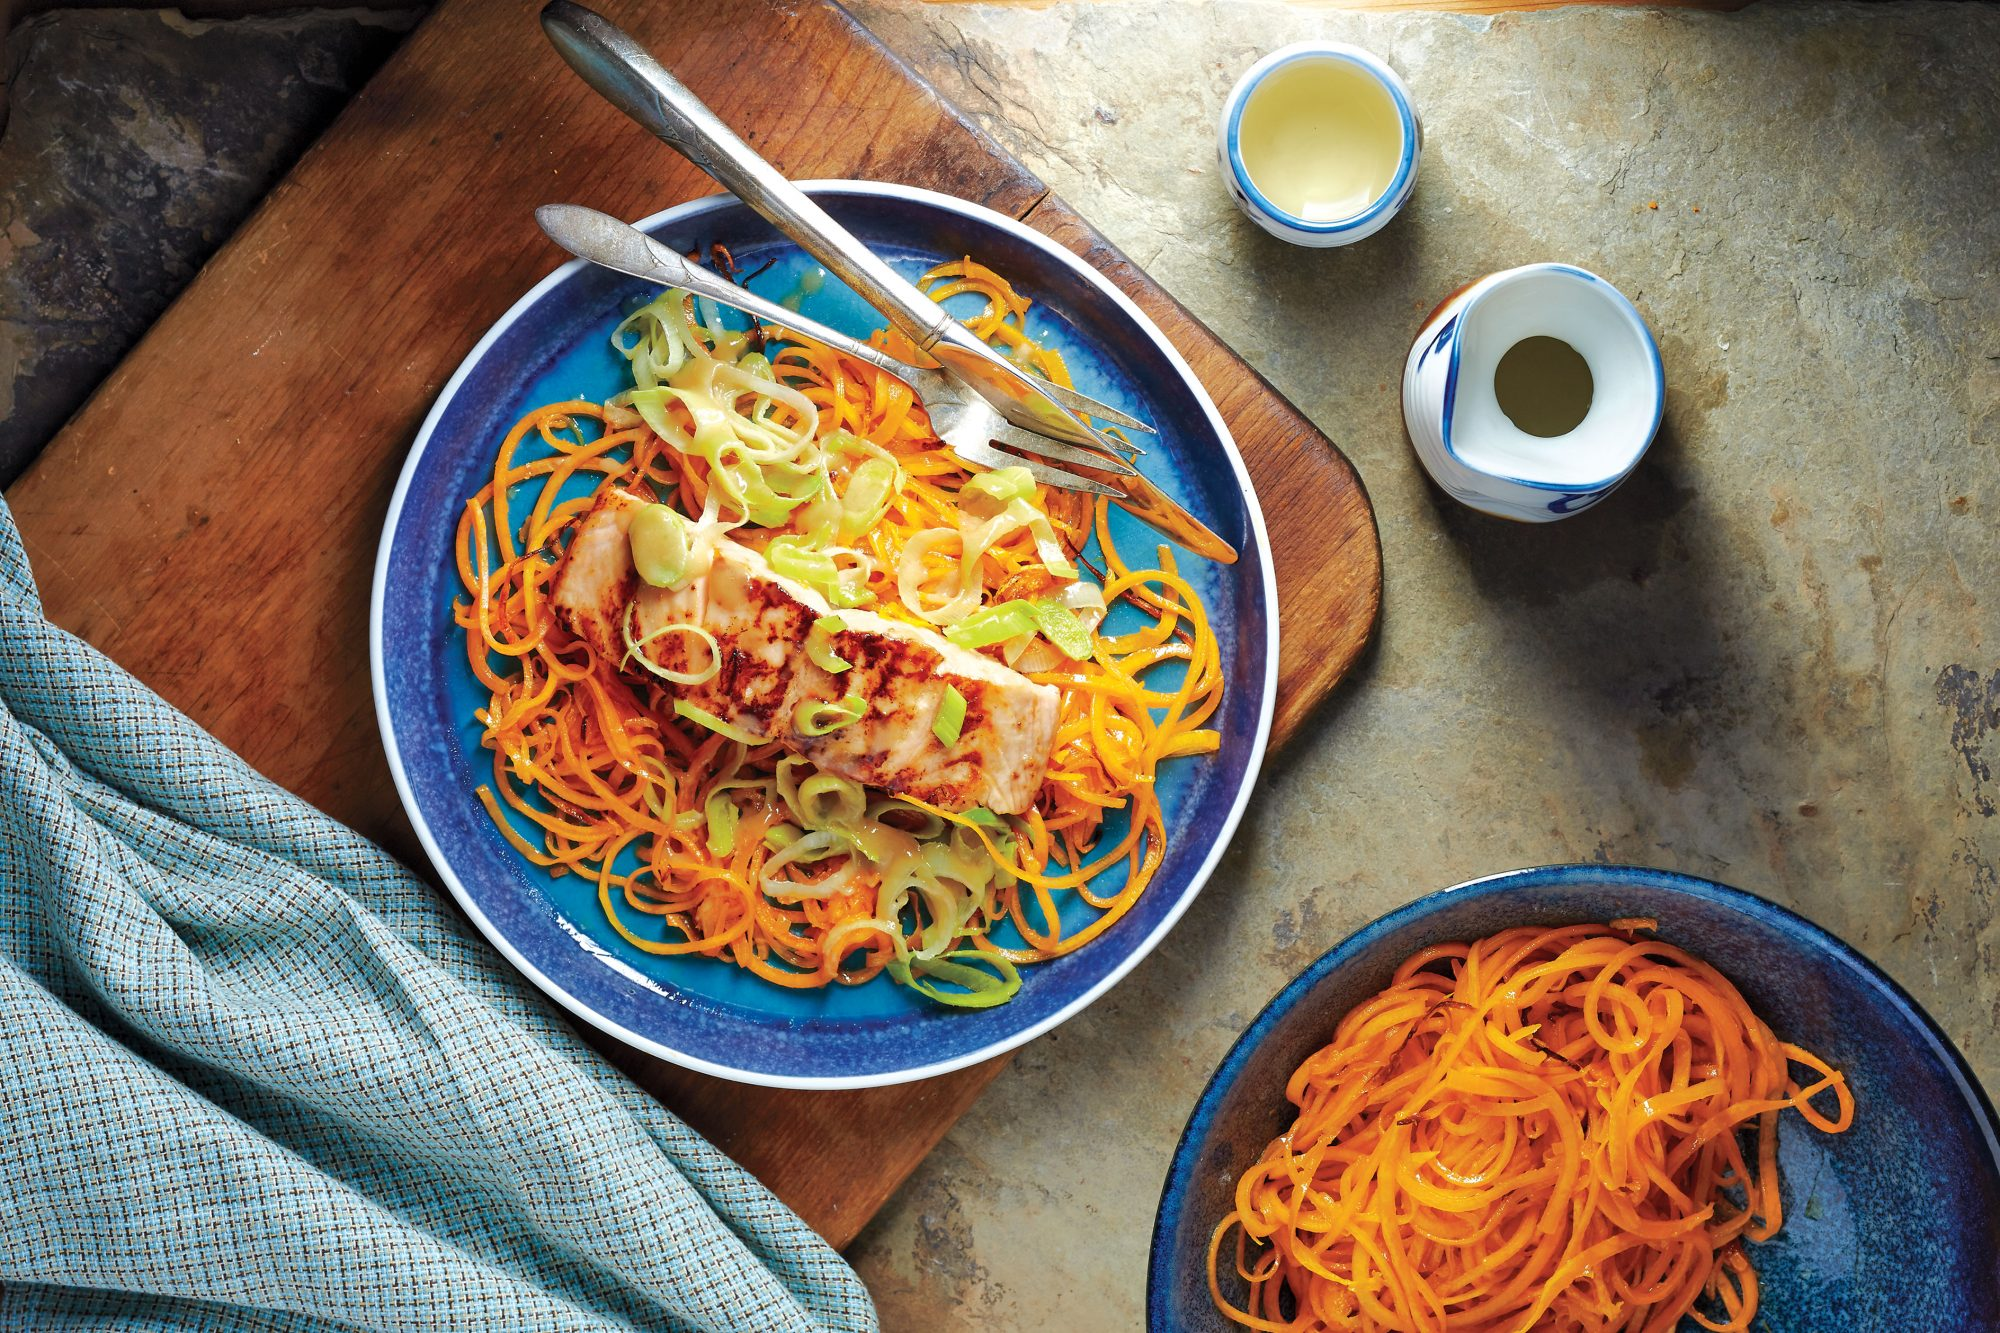 Winter Squash Noodles With Miso-Glazed Salmon and Leeks